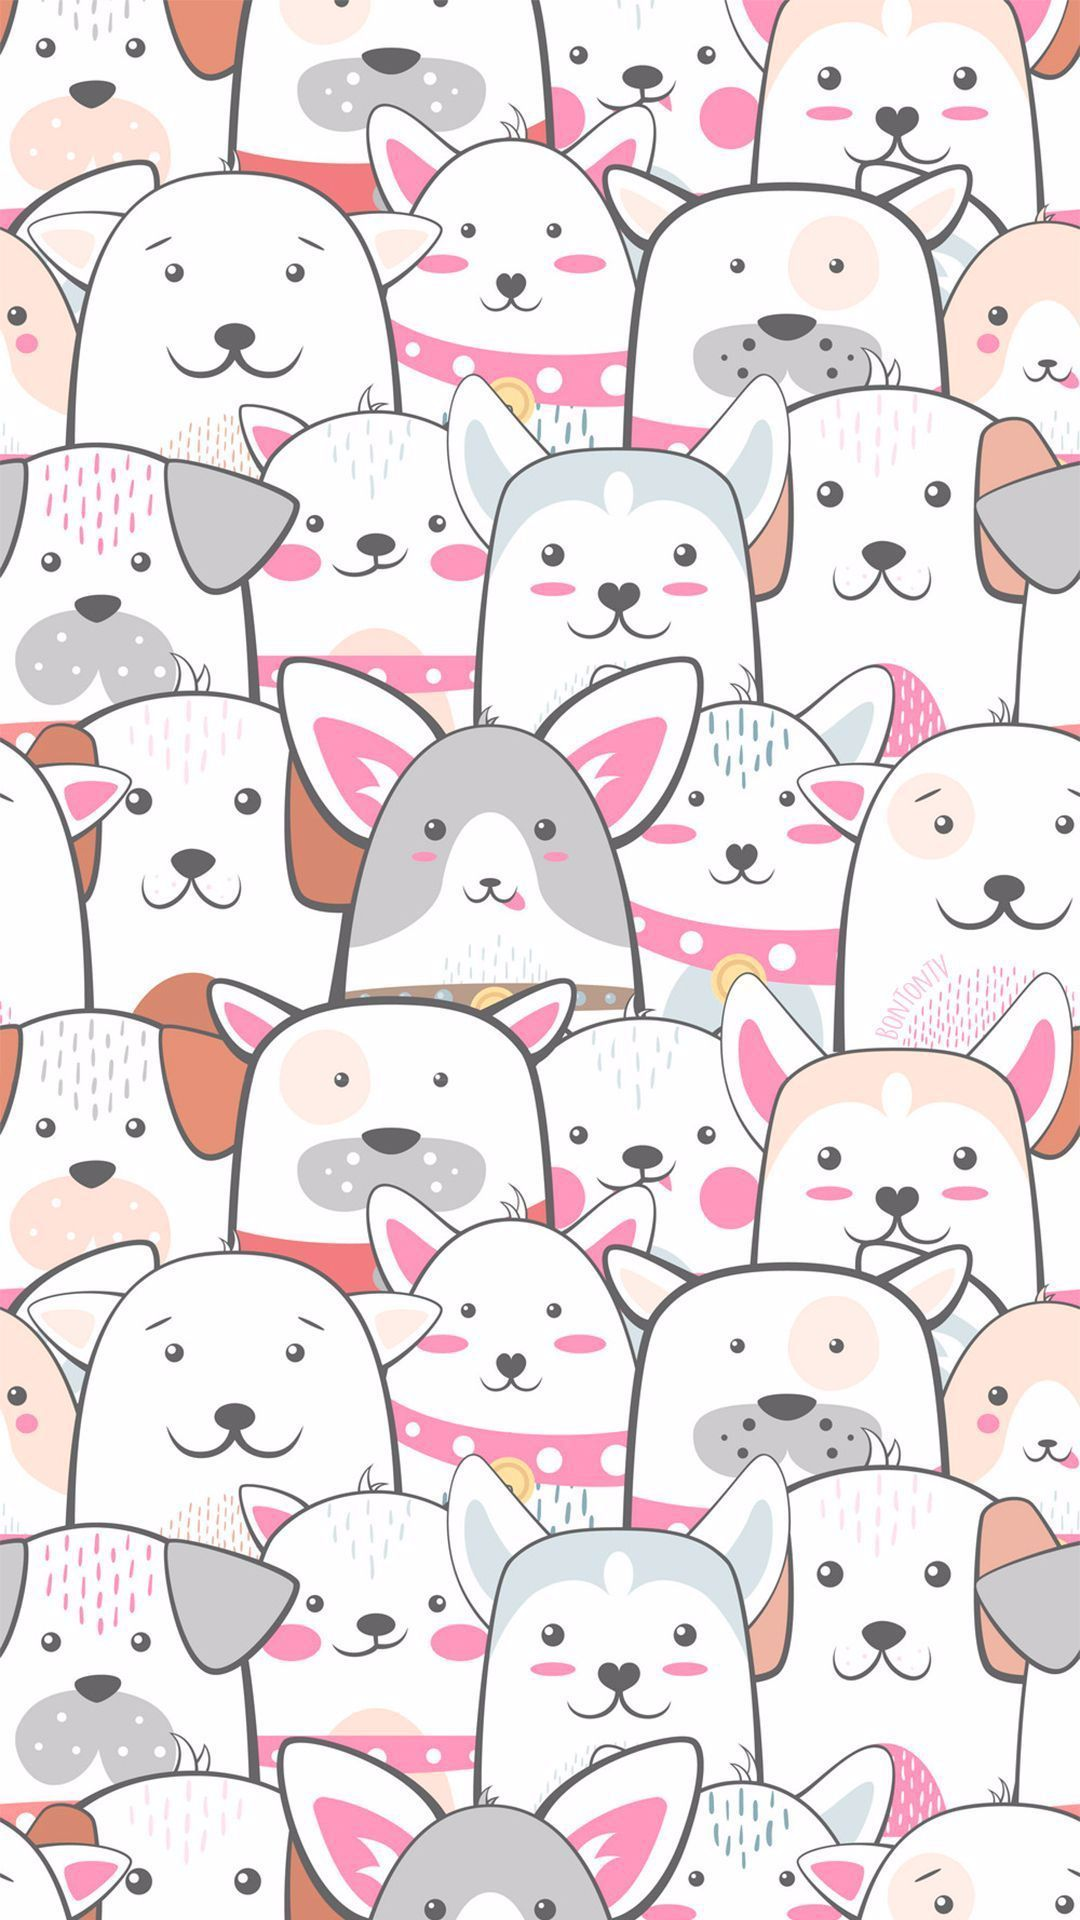 phone wall paper watercolor Phone Wallpapers HD Cute Dogs  by BonTon TV  Free Backgrounds 1080x1920 wallpapers iPhone smartphone Here you can find a collection of elegant...